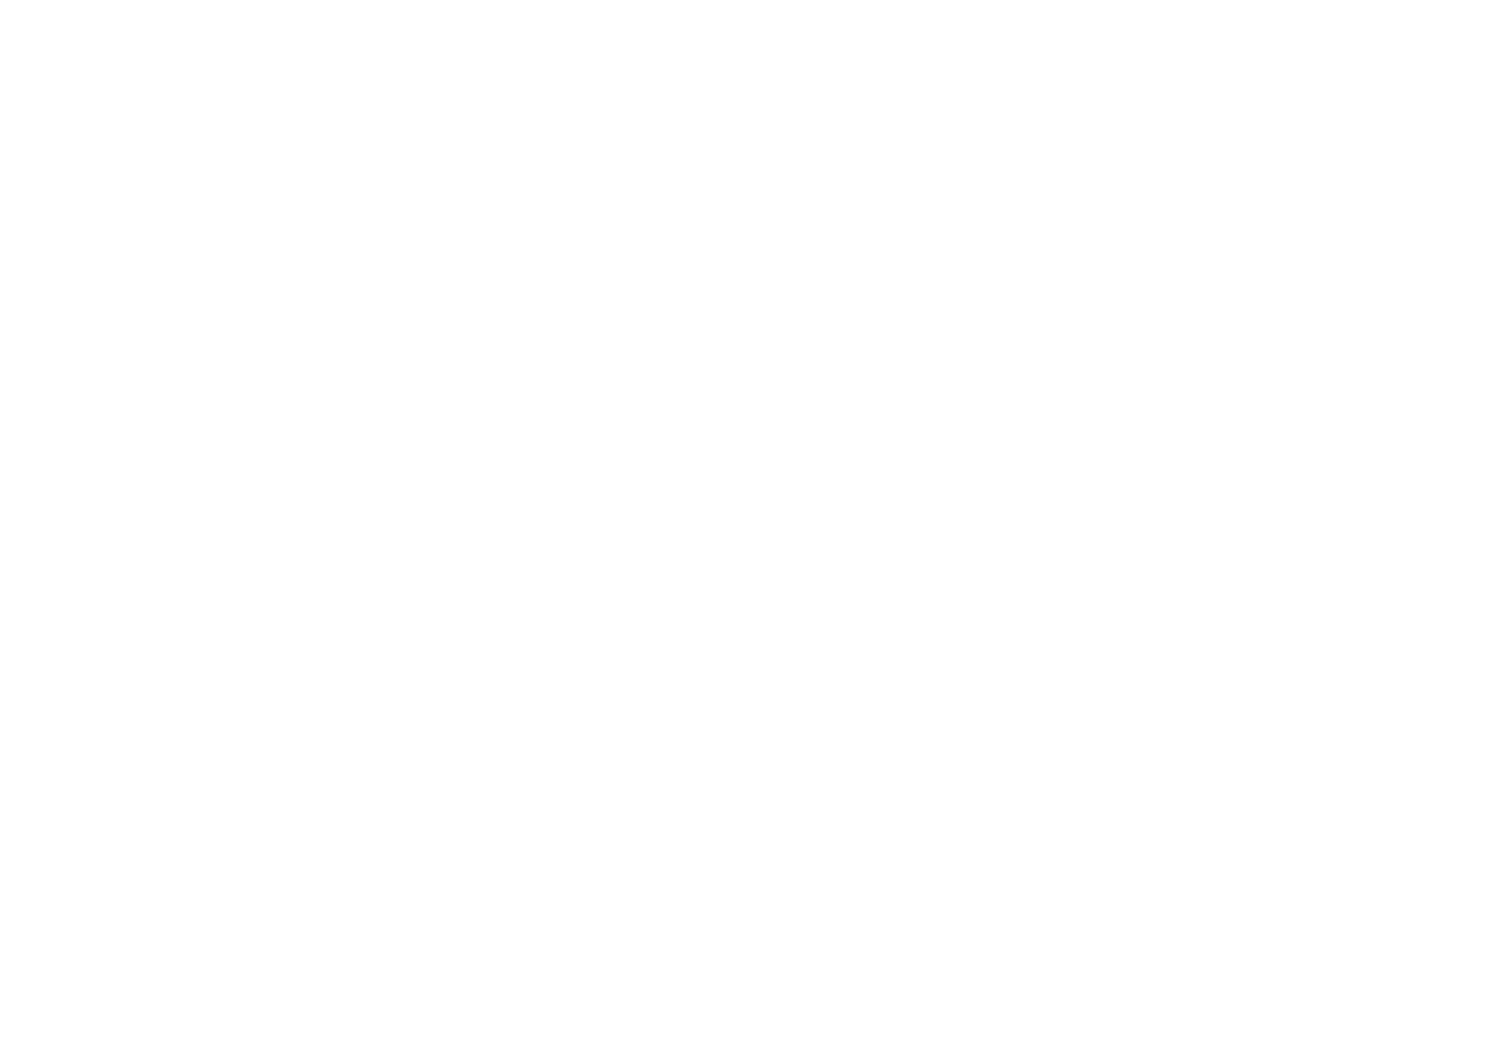 Cottage City Oysters